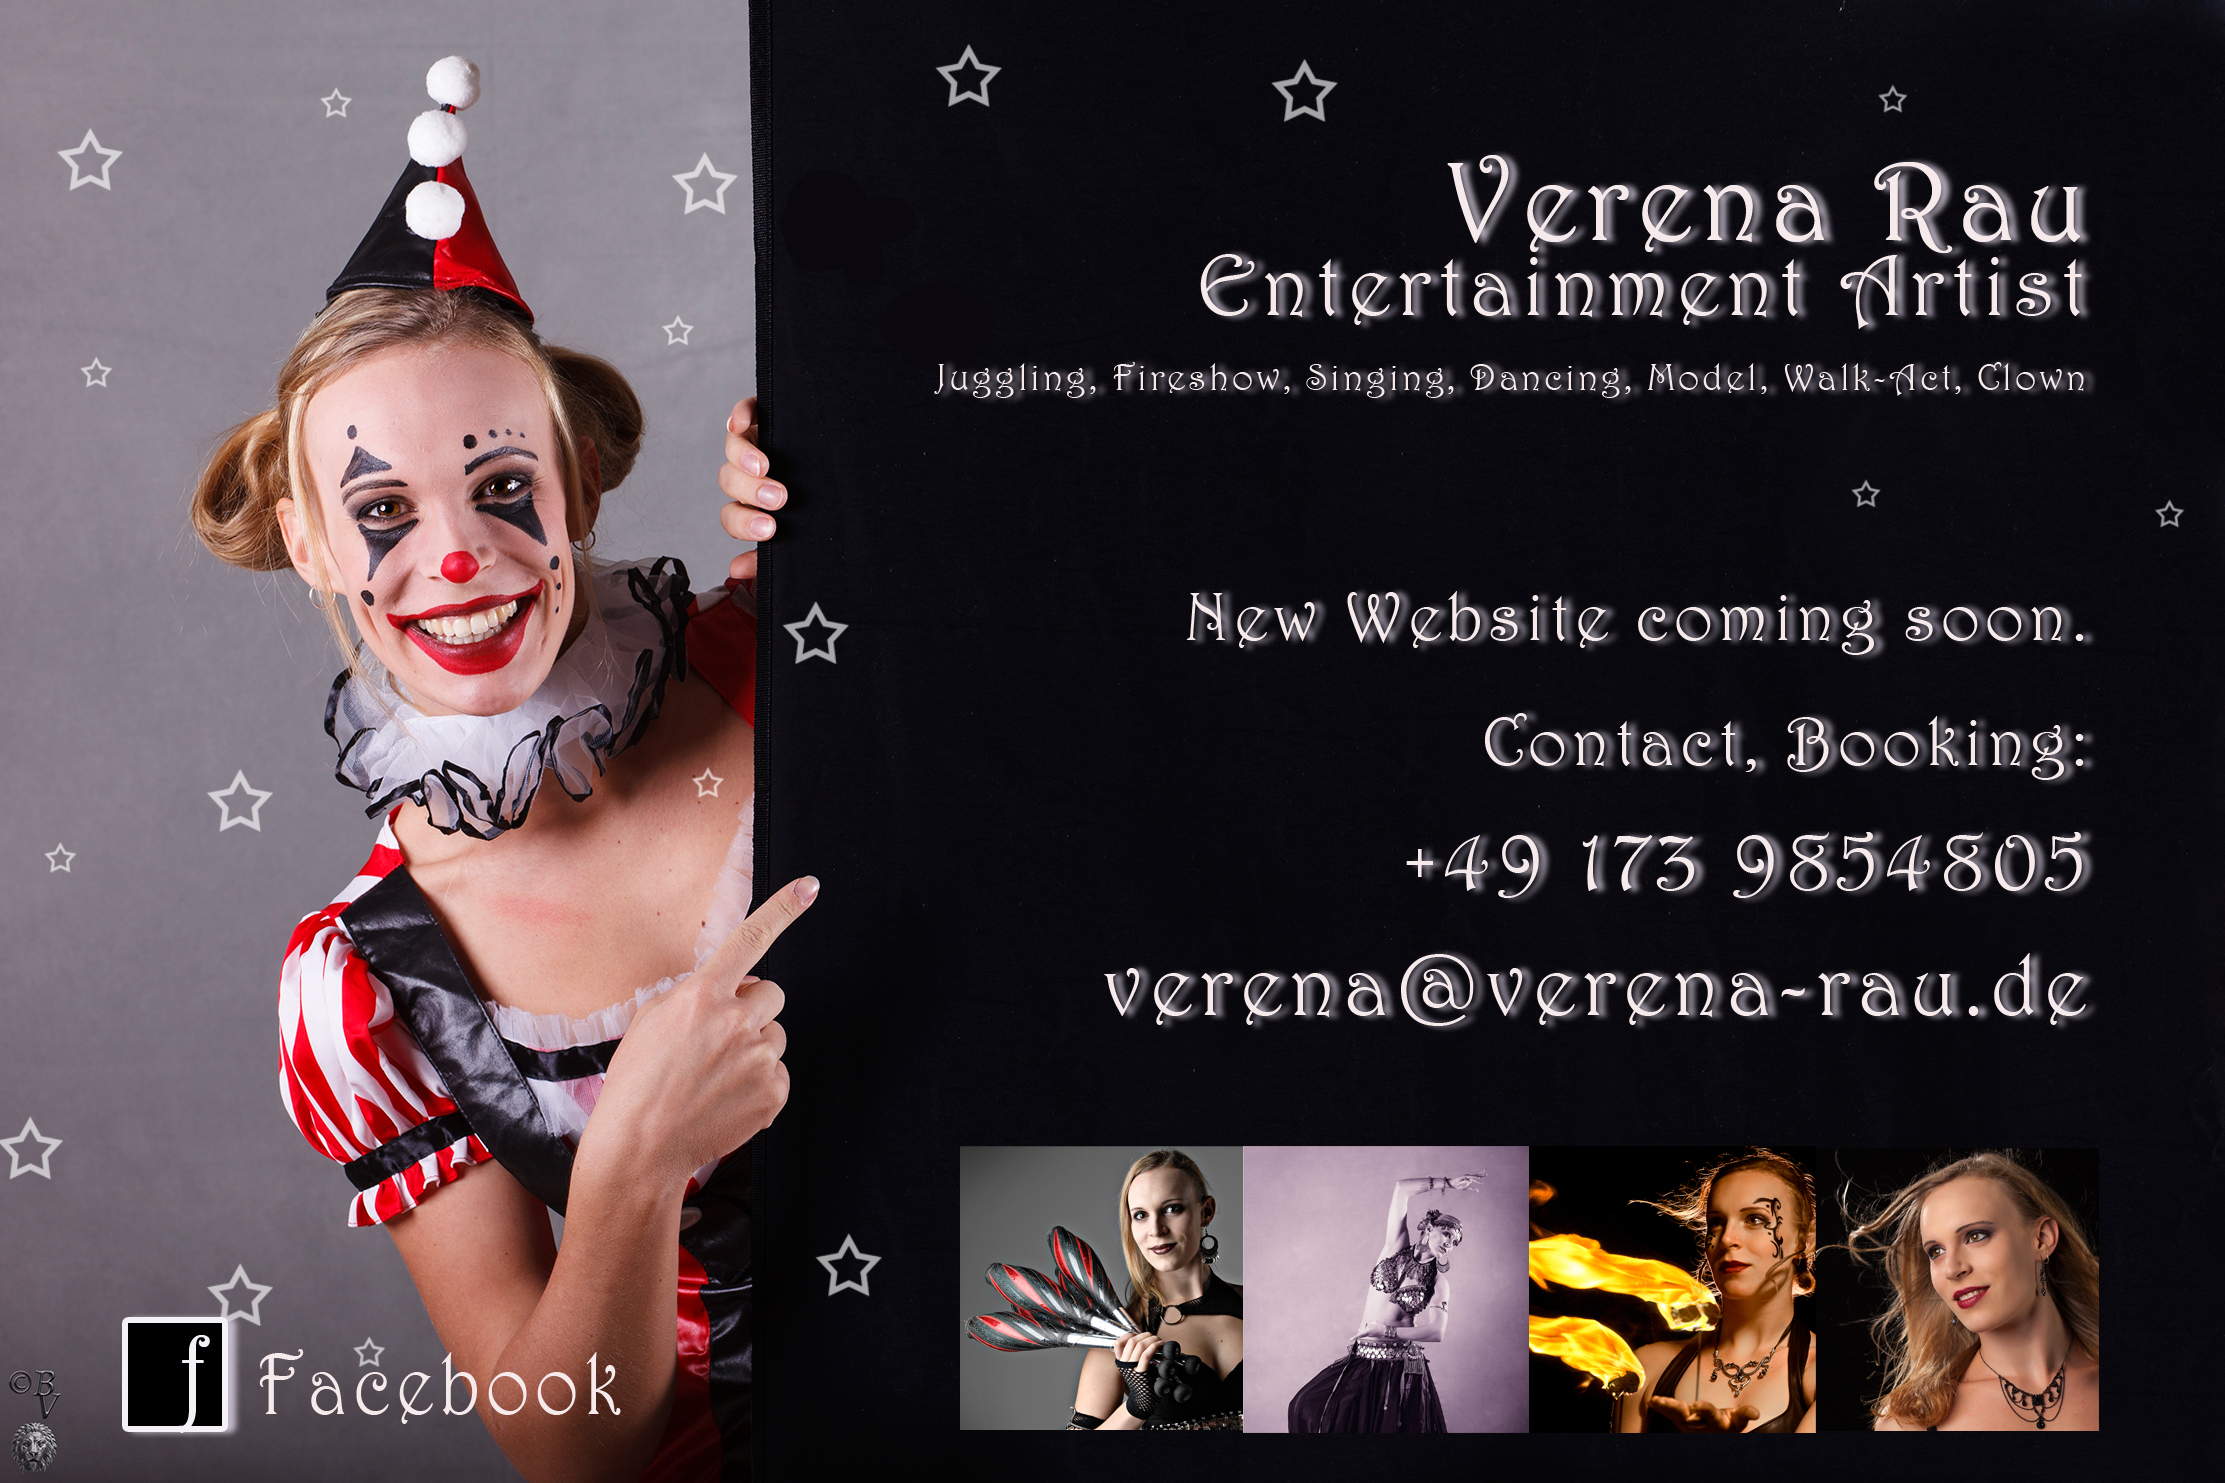 website is currently under construction. Click here for Verena's Facebook page